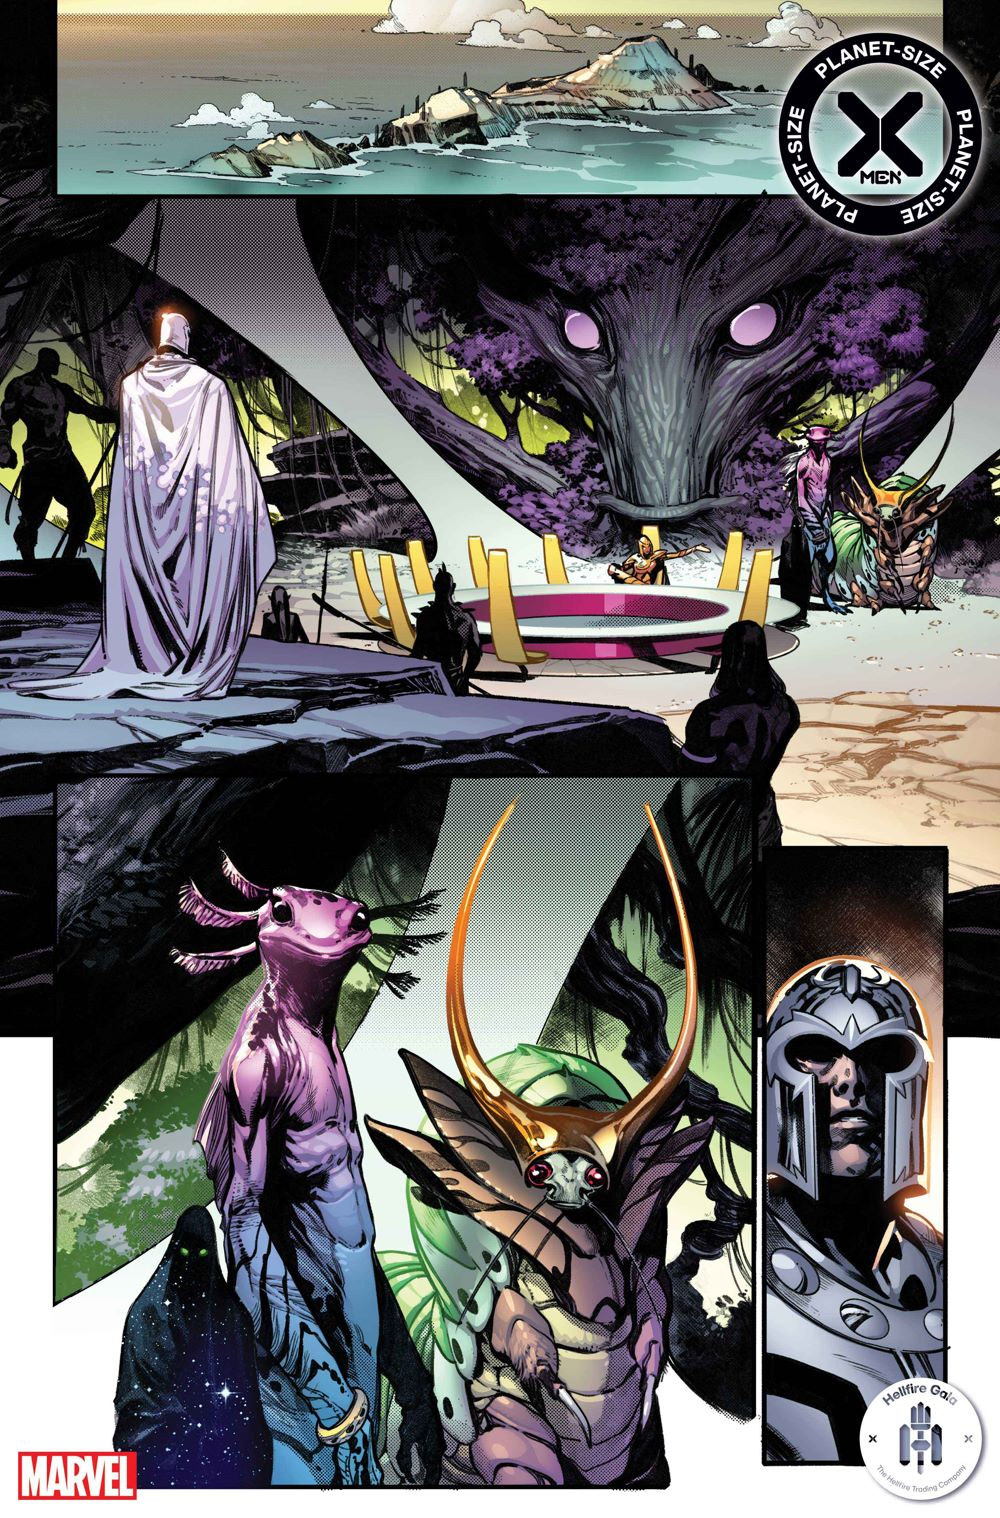 PSXMEN2021001_Interior4 First Look at PLANET-SIZE X-MEN #1 from Marvel Comics